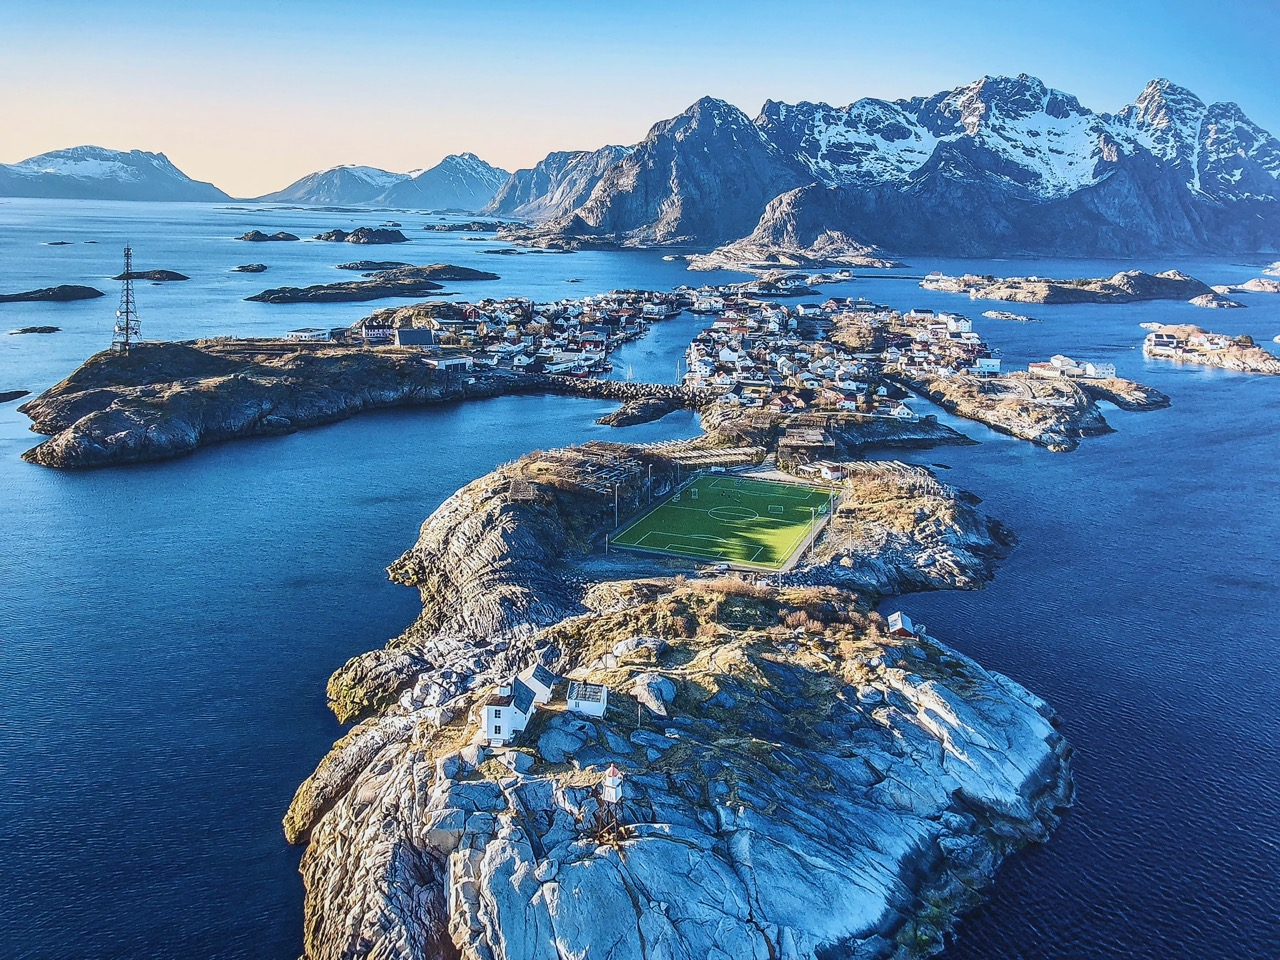 Henningsvaer town and soccer field